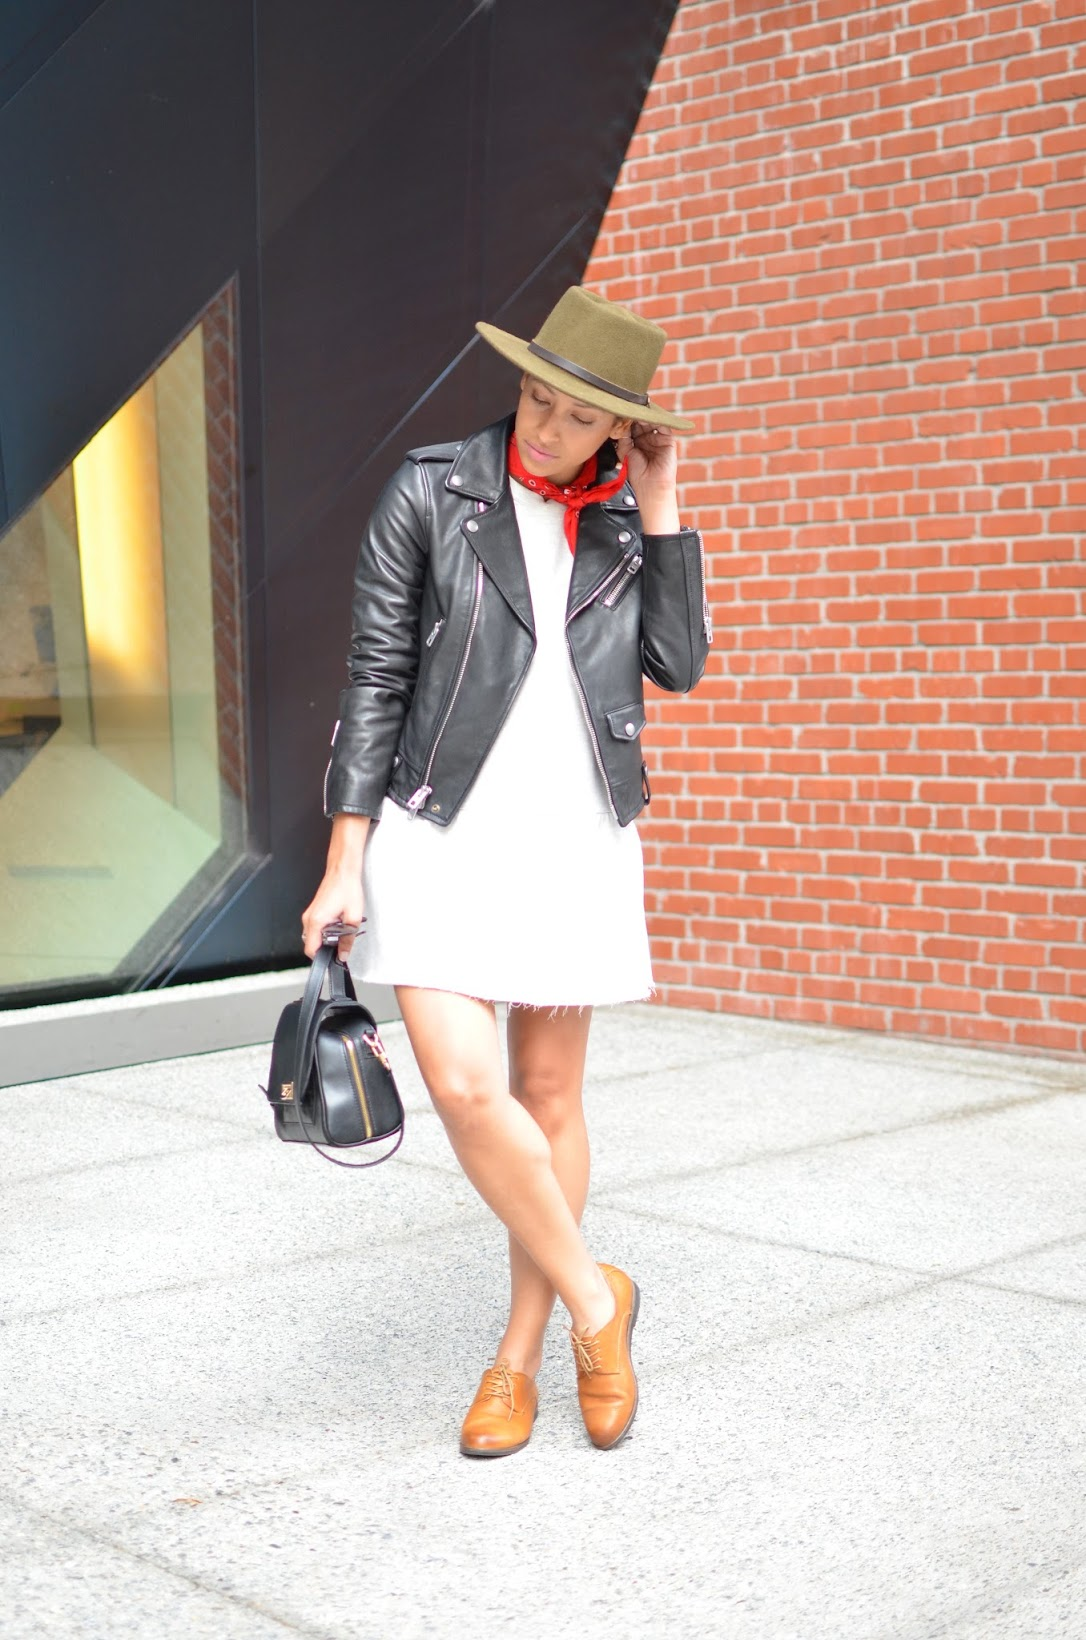 Ectu LA handbag, tomboy chic style, Olukai Keawe oxfords, zara dropwaist dress, Coach moto leather jacket, red bandana, how to do the bandana trend, how to wear a bandana, fedora hats for fall, Contemporary Jewish Museum